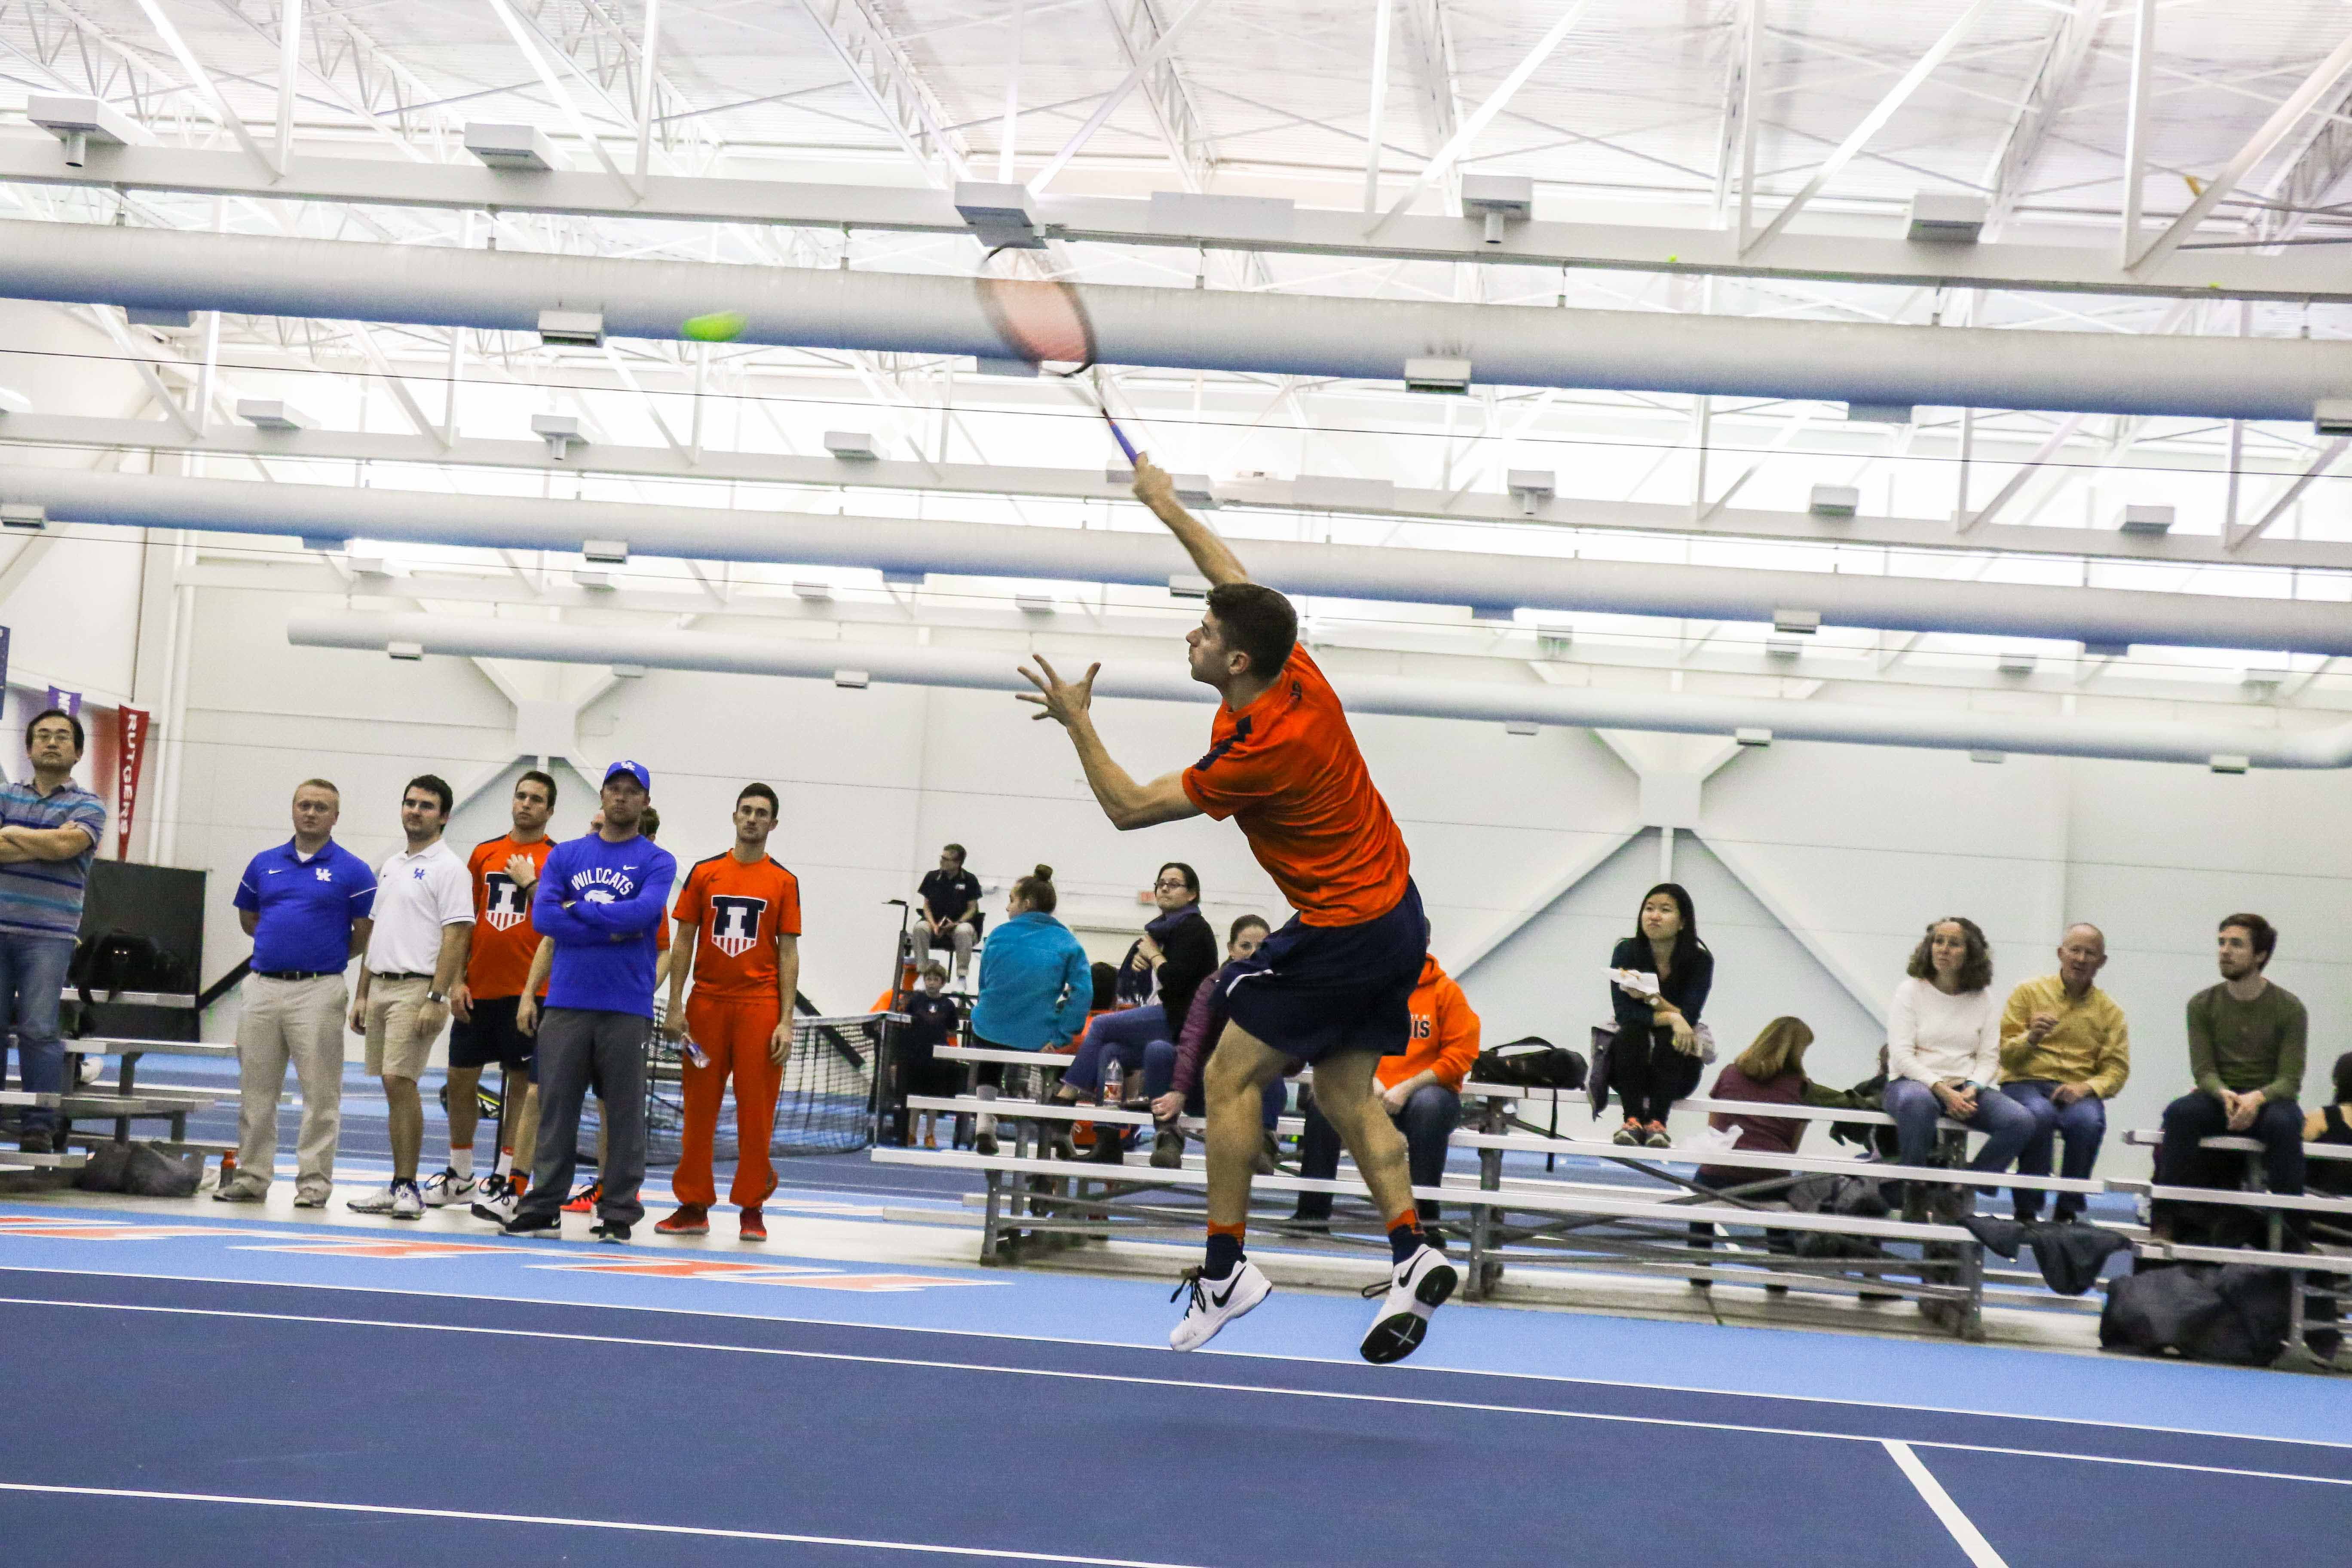 Illinois' Aron Hiltzik hits an overhead against Kentucky on Feb. 24 at the Atkins Tennis Center. The Illini take on Penn State and Ohio State this weekend. While the team has been inconsistent this season, it is currently riding a winning streak.